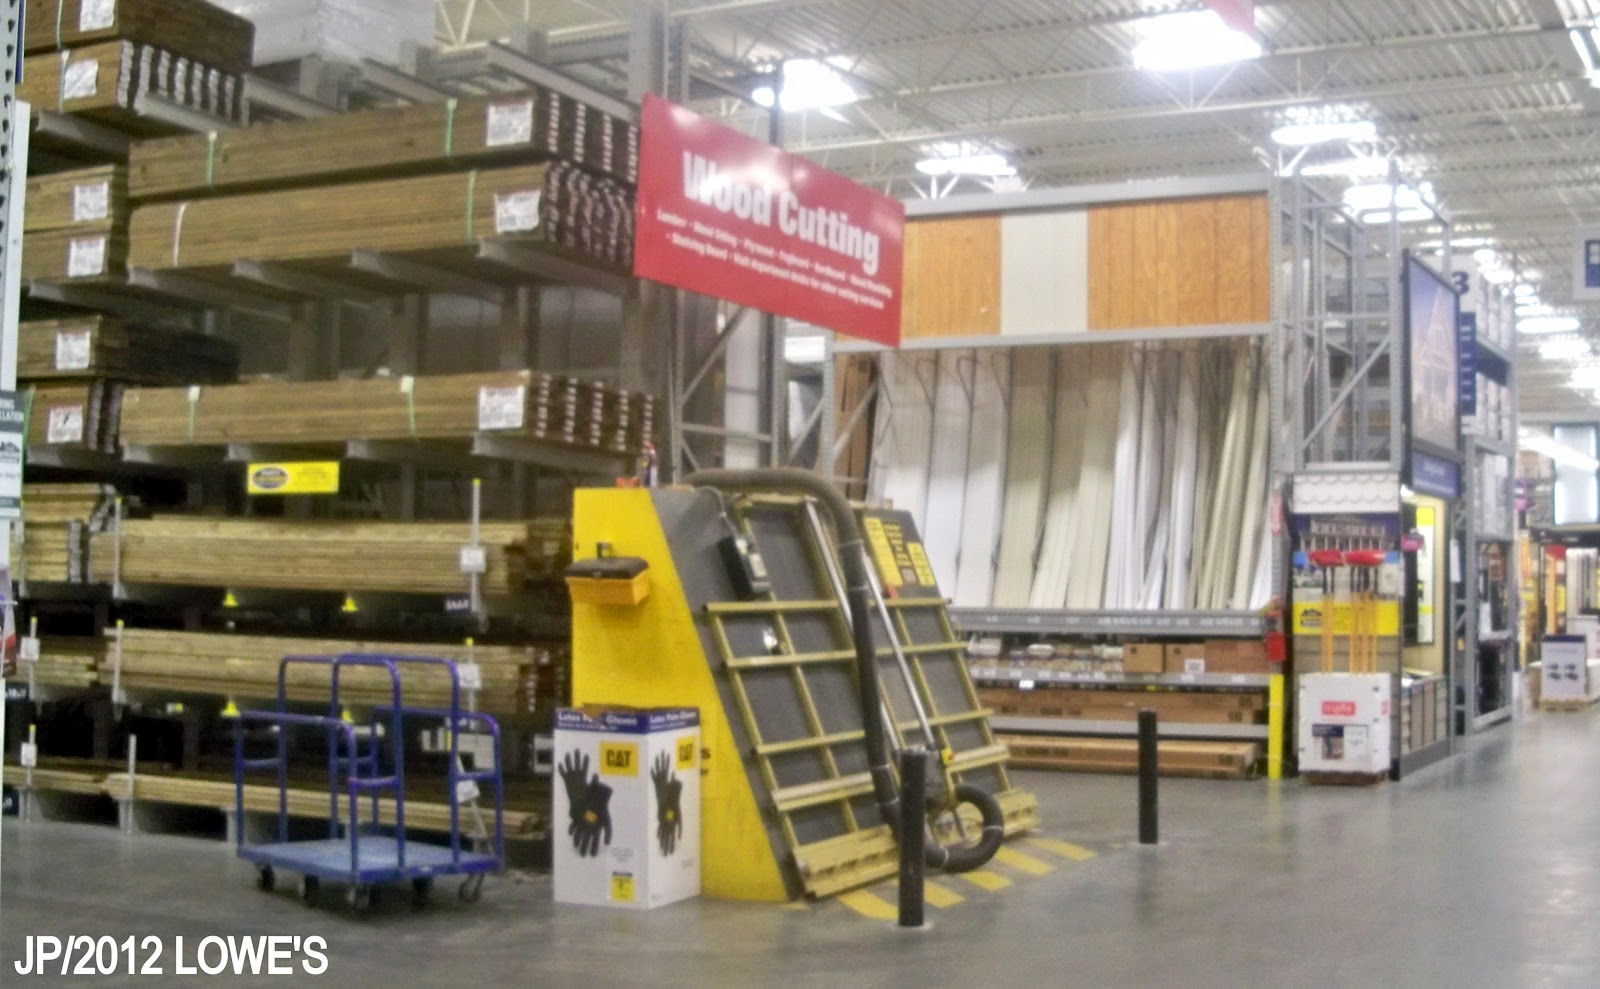 Remarkable Lowe's Home Improvement Warehouse Store 1600 x 989 · 228 kB · jpeg